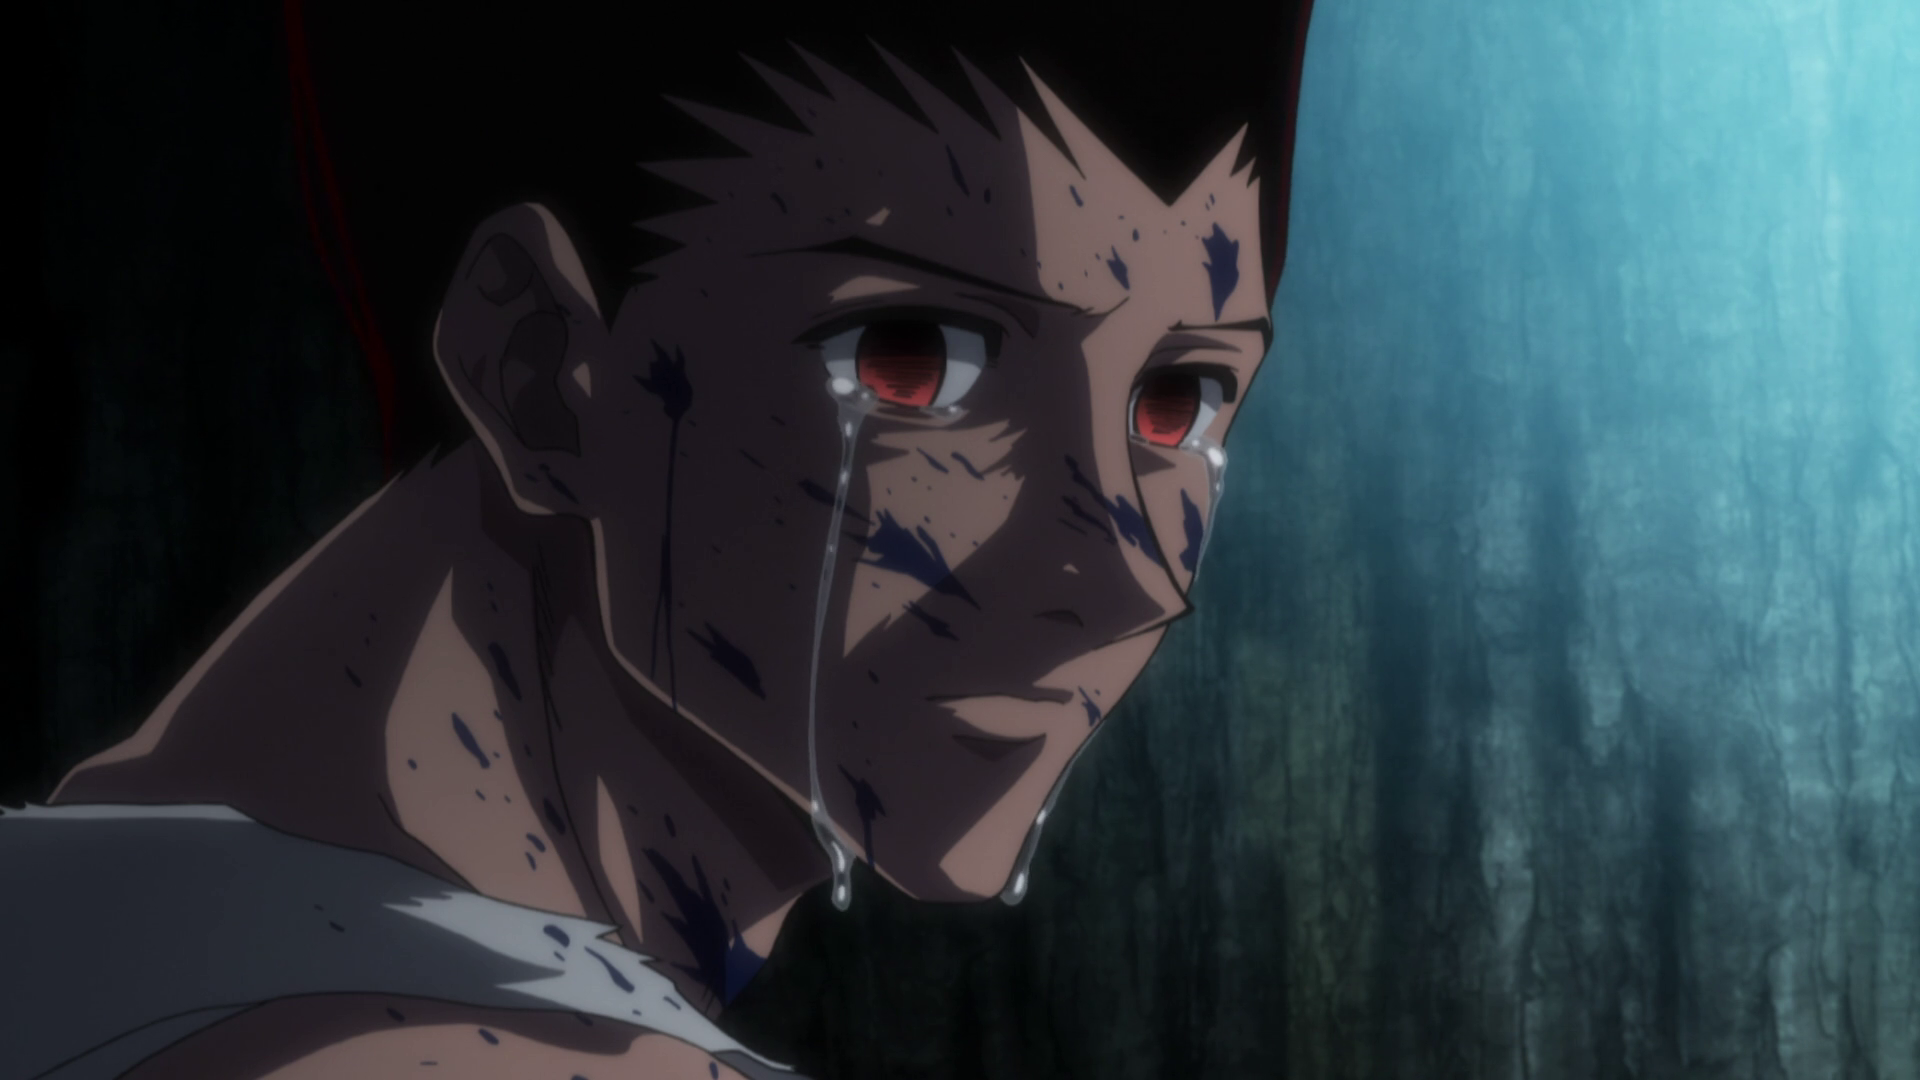 anime characters crying have you ever cried with the anime characters? - forums